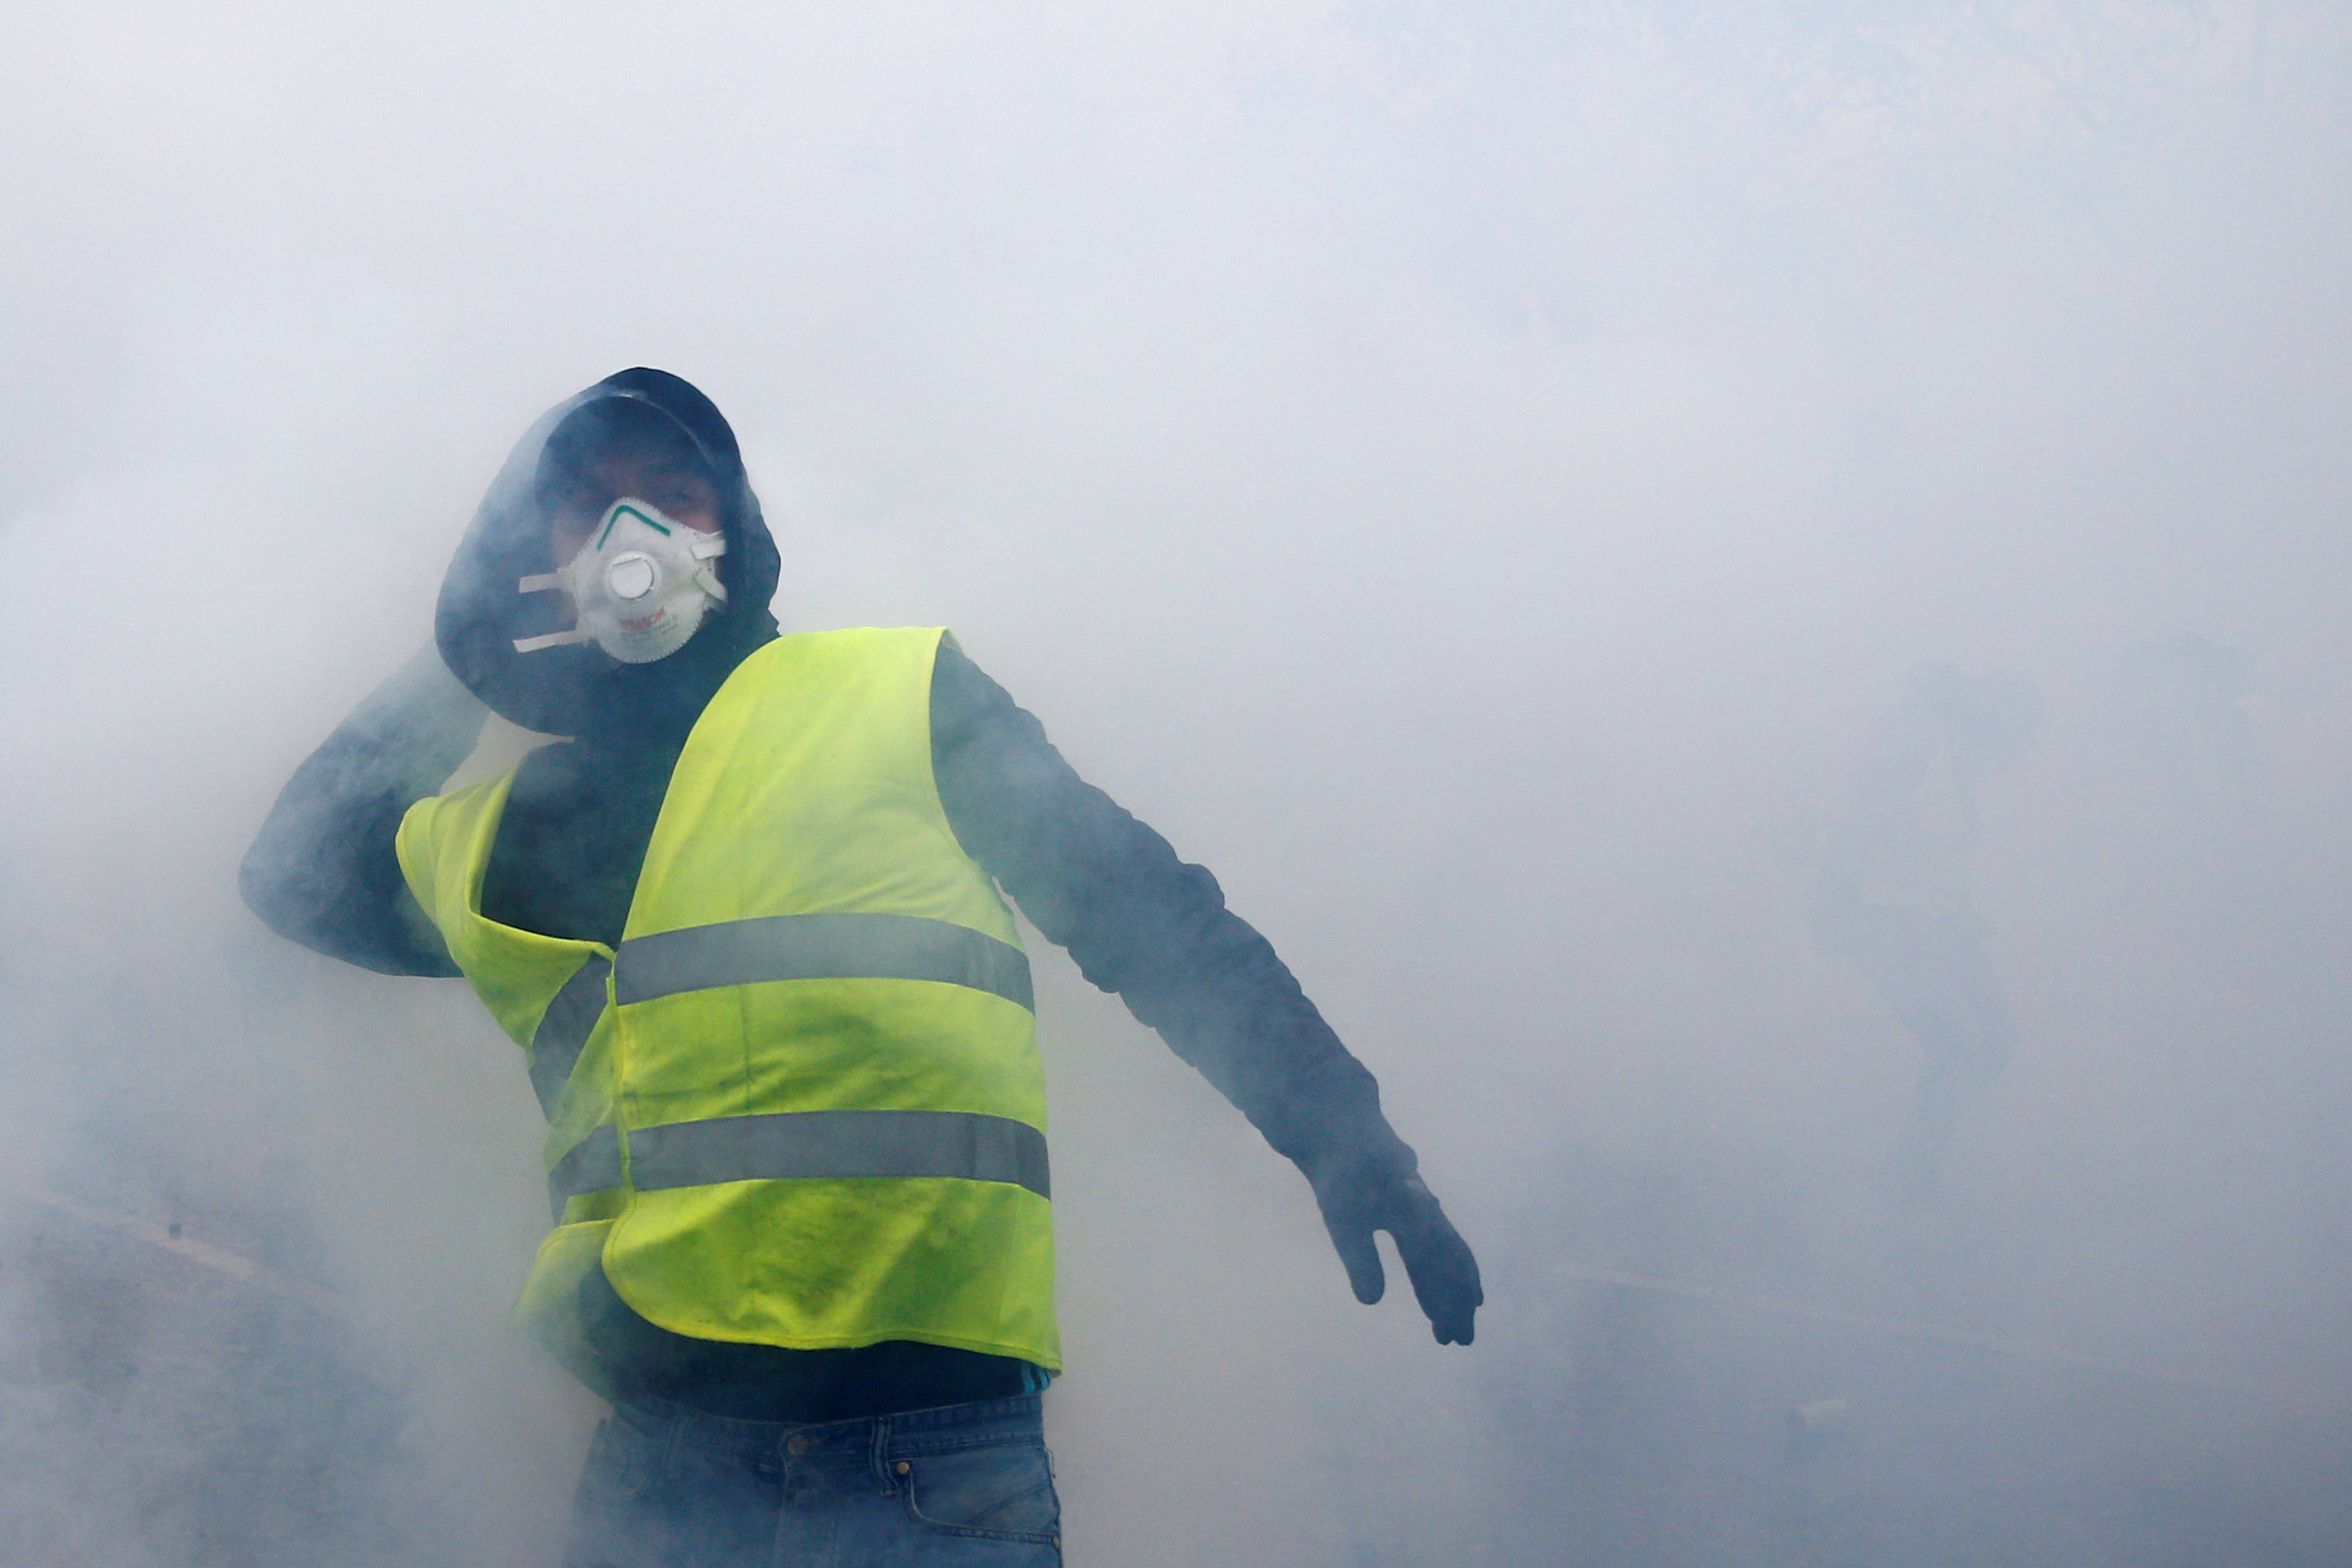 2018-12-01T162428Z_401995465_RC1A6F6911D0_RTRMADP_3_FRANCE-PROTESTS